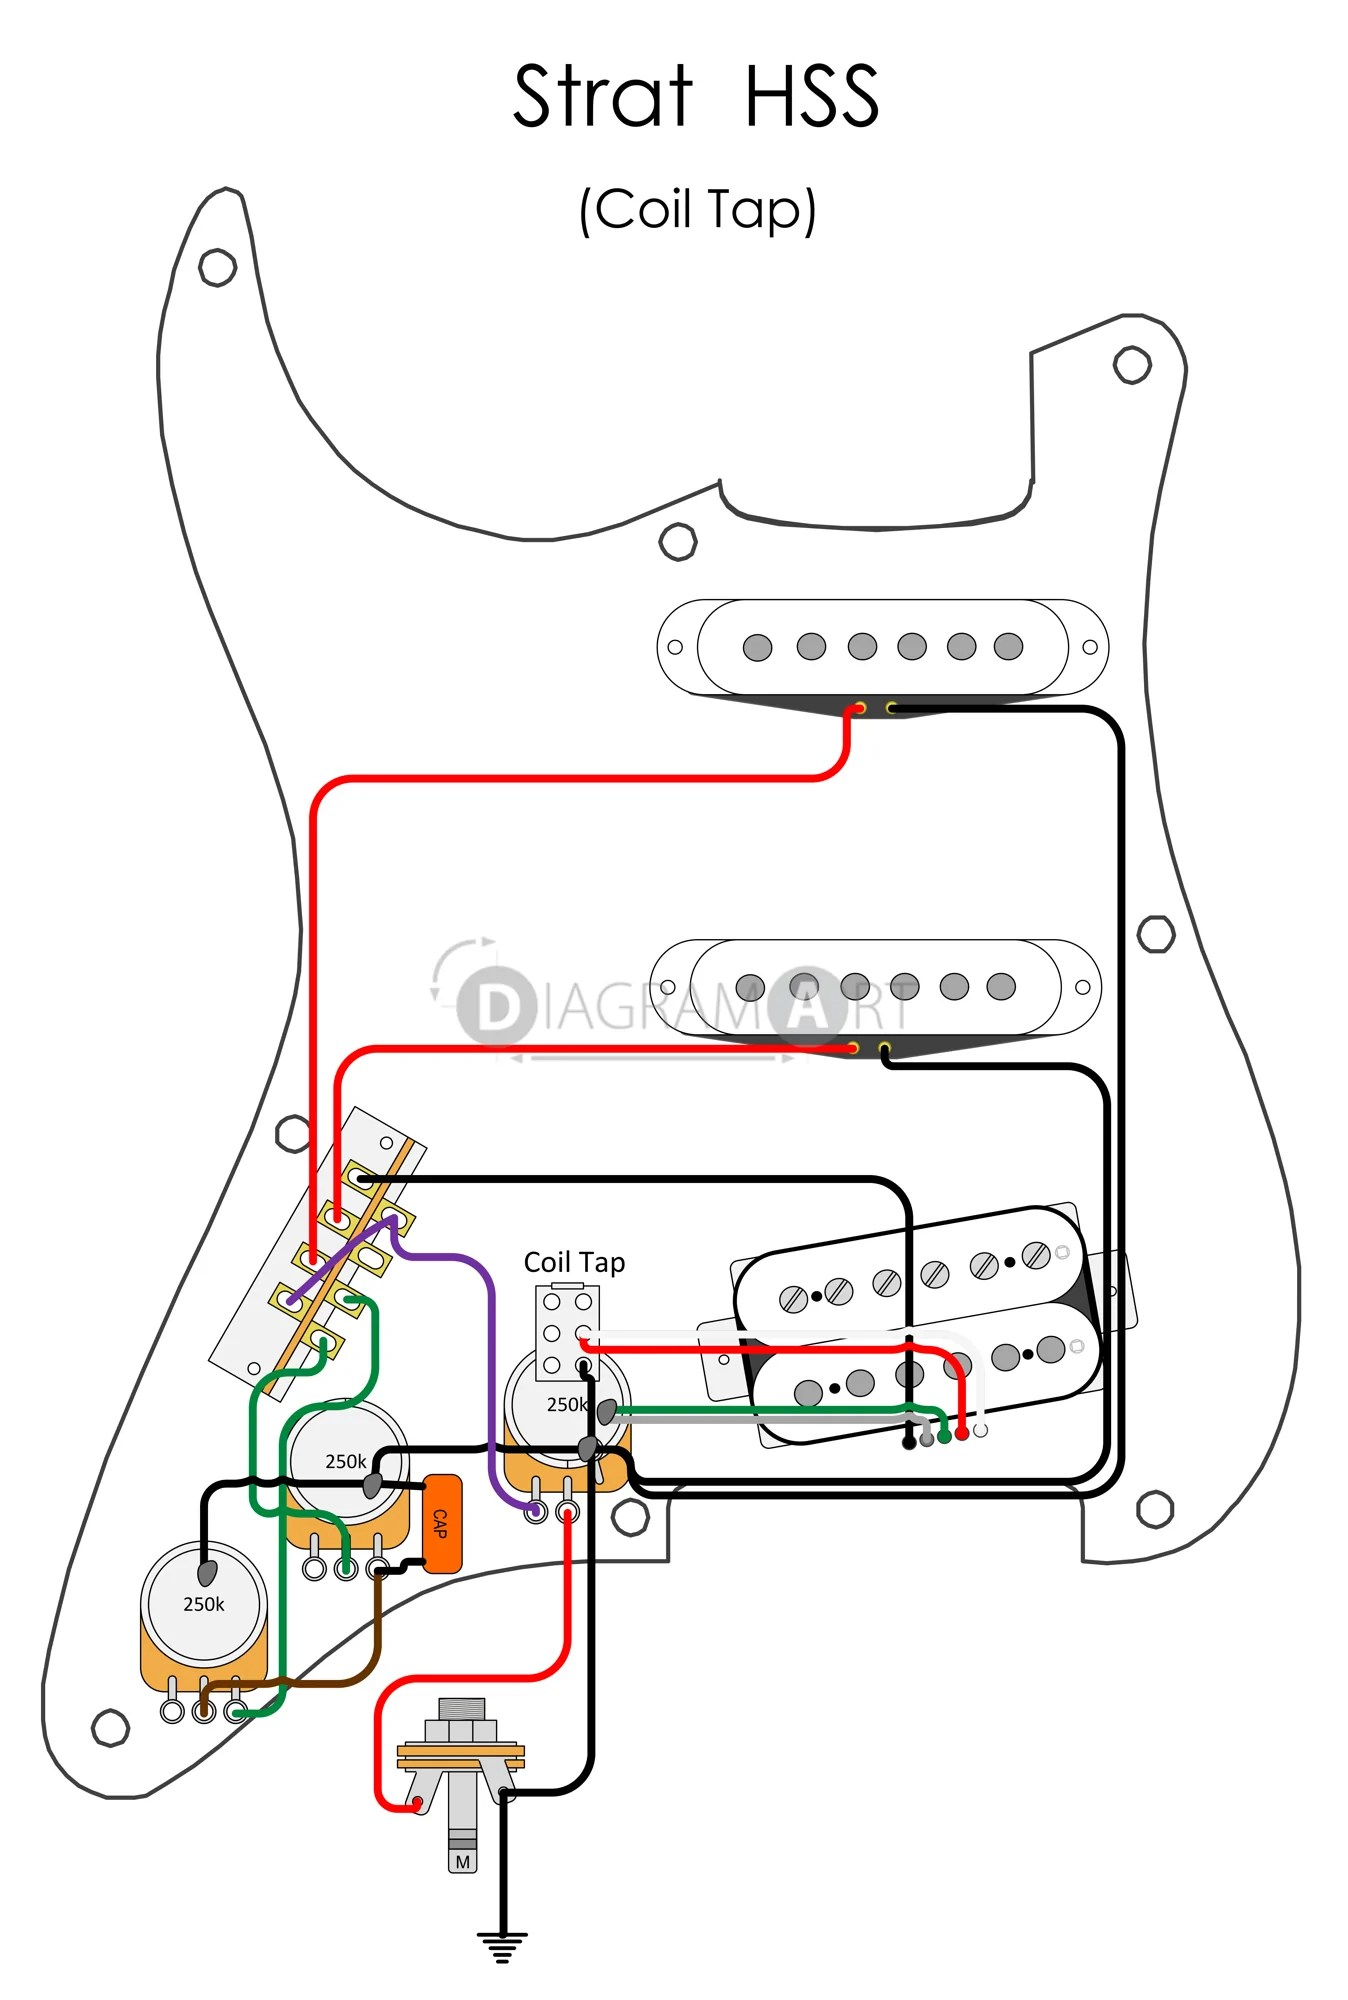 hight resolution of hss with coil split wiring diagram wiring diagram schematics split coil pickup coil split hss wiring diagram